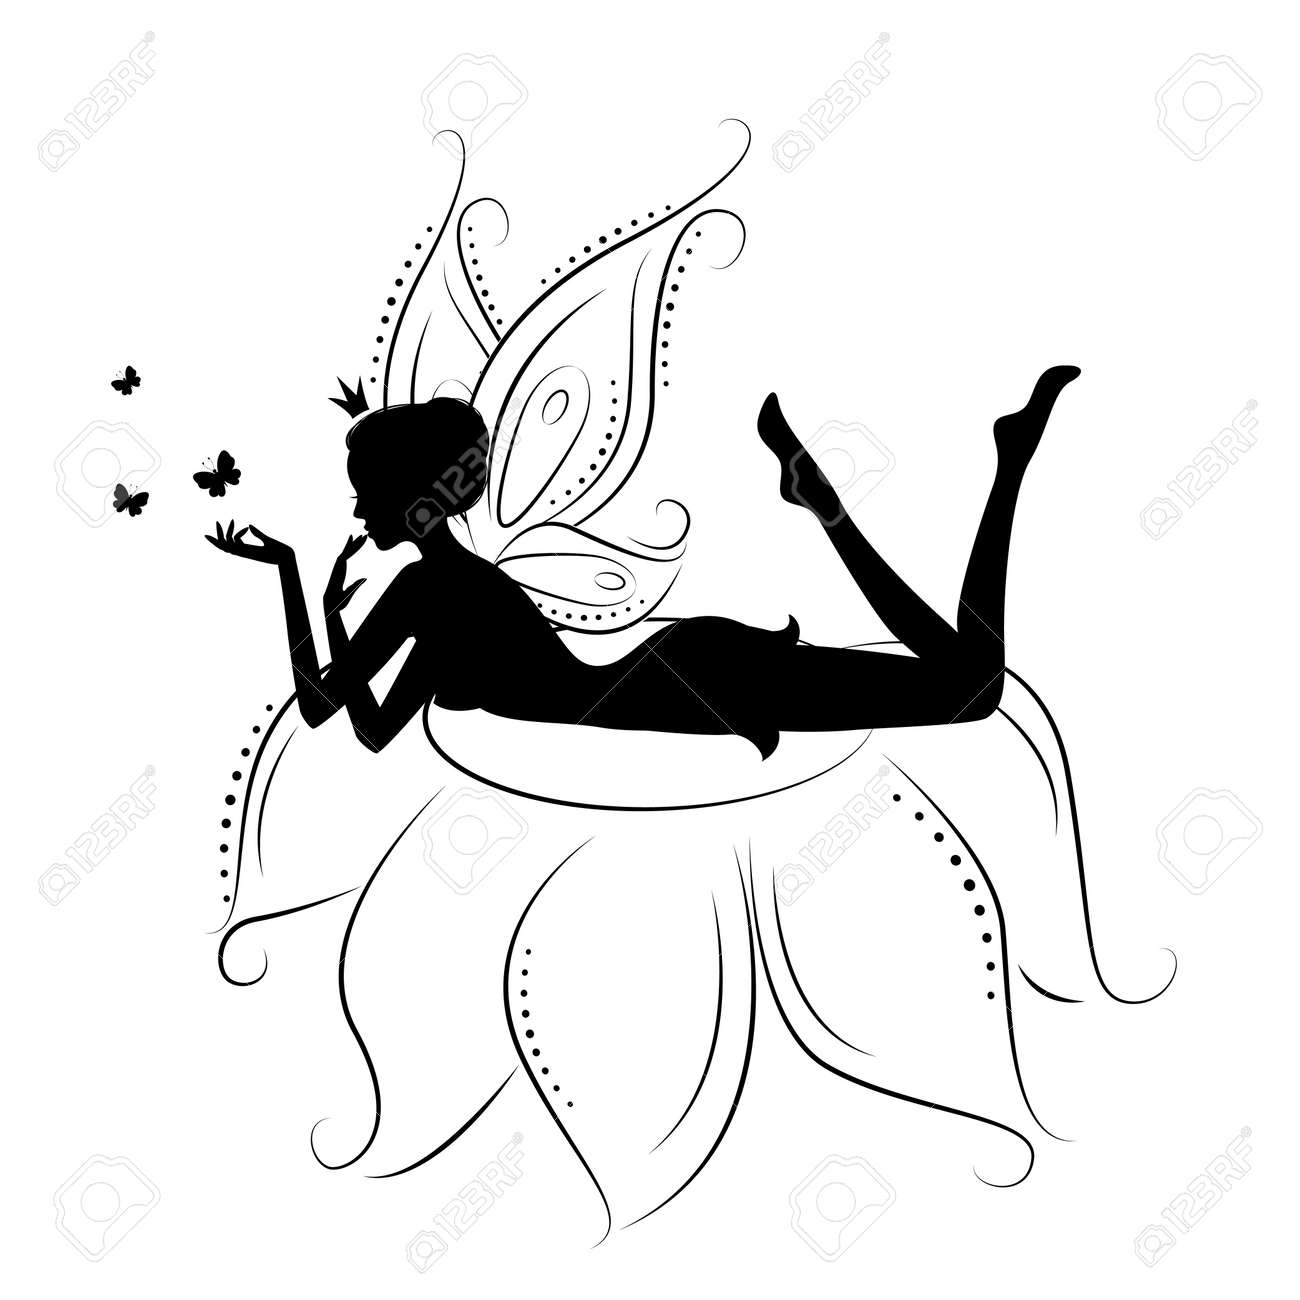 fairy silhouette images u0026 stock pictures royalty free fairy